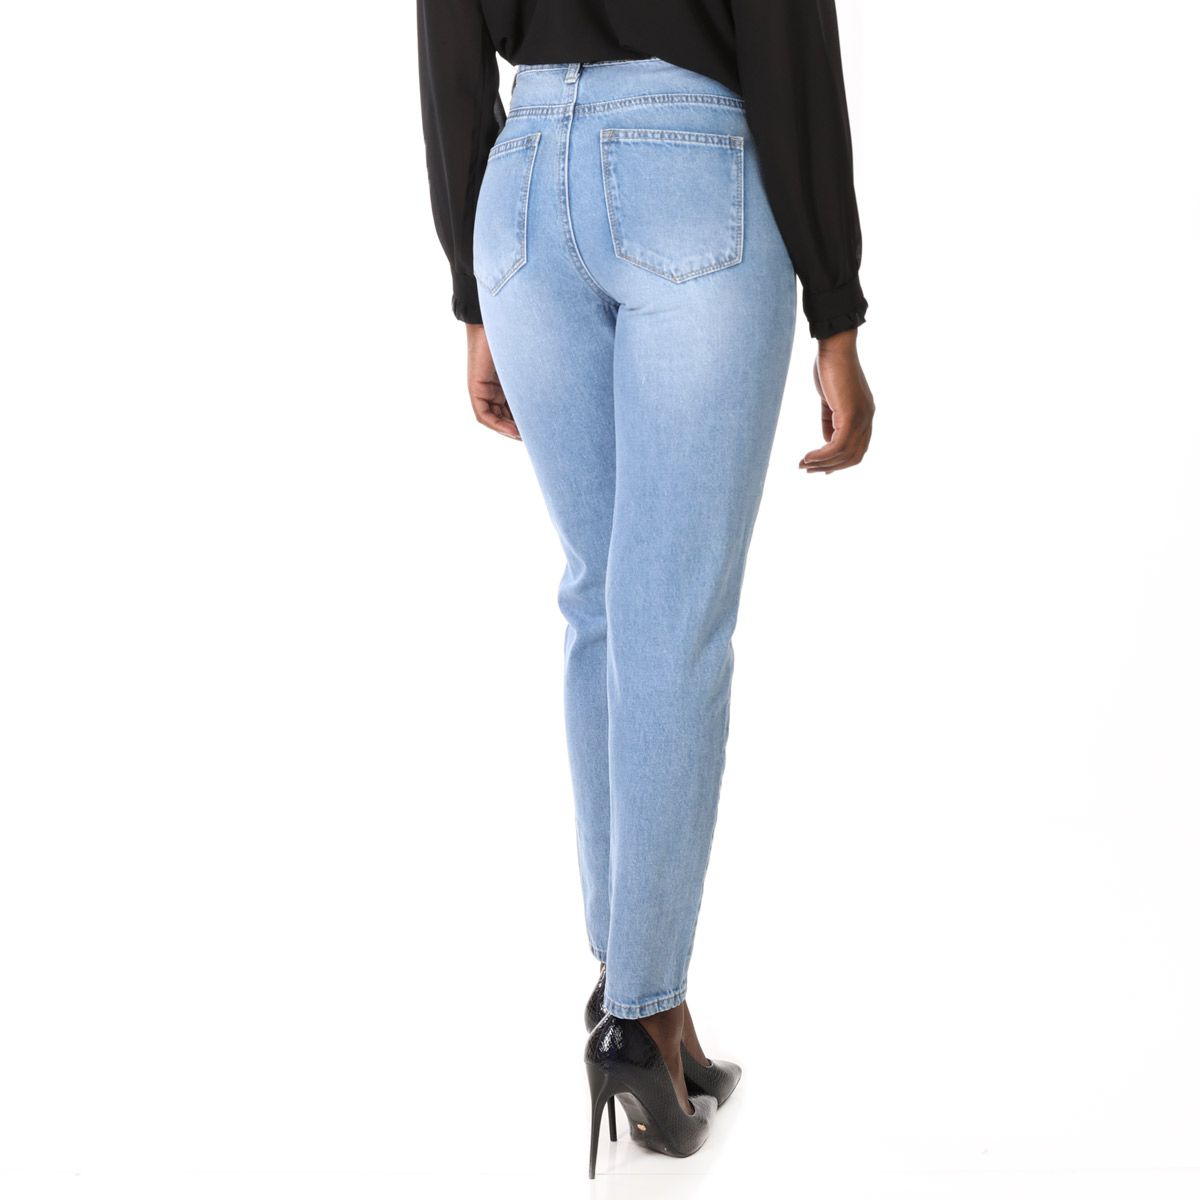 Jeans bleu clair coupe mom taille haute